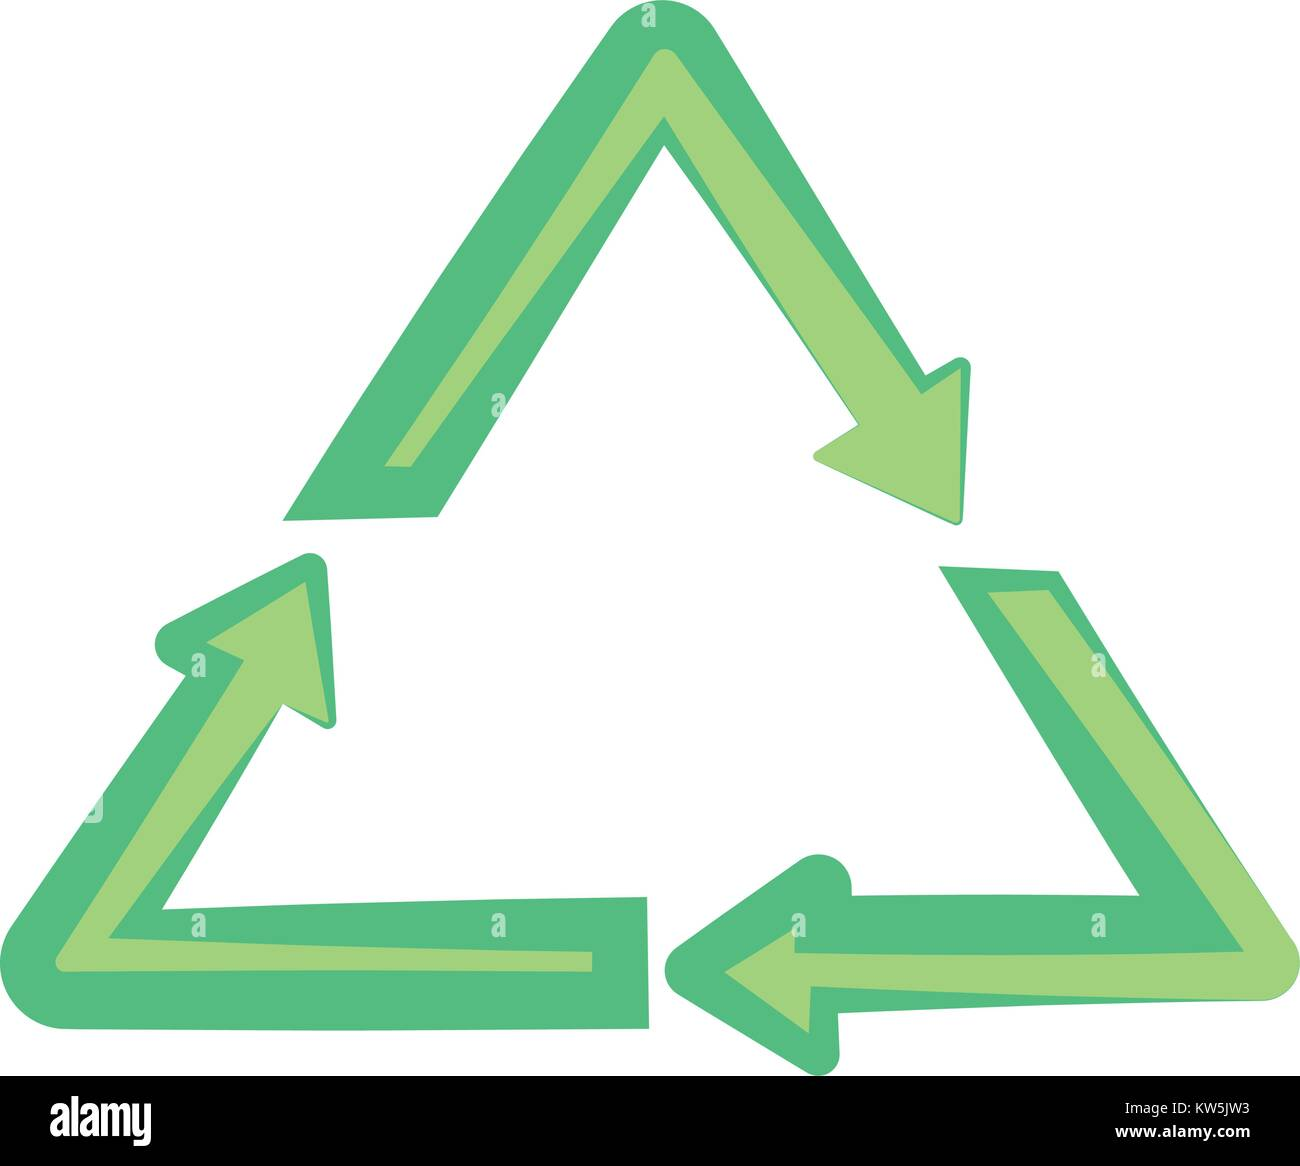 Earth cartoon recycle symbol stock photos earth cartoon recycle recycle arrows symbol cartoon stock image biocorpaavc